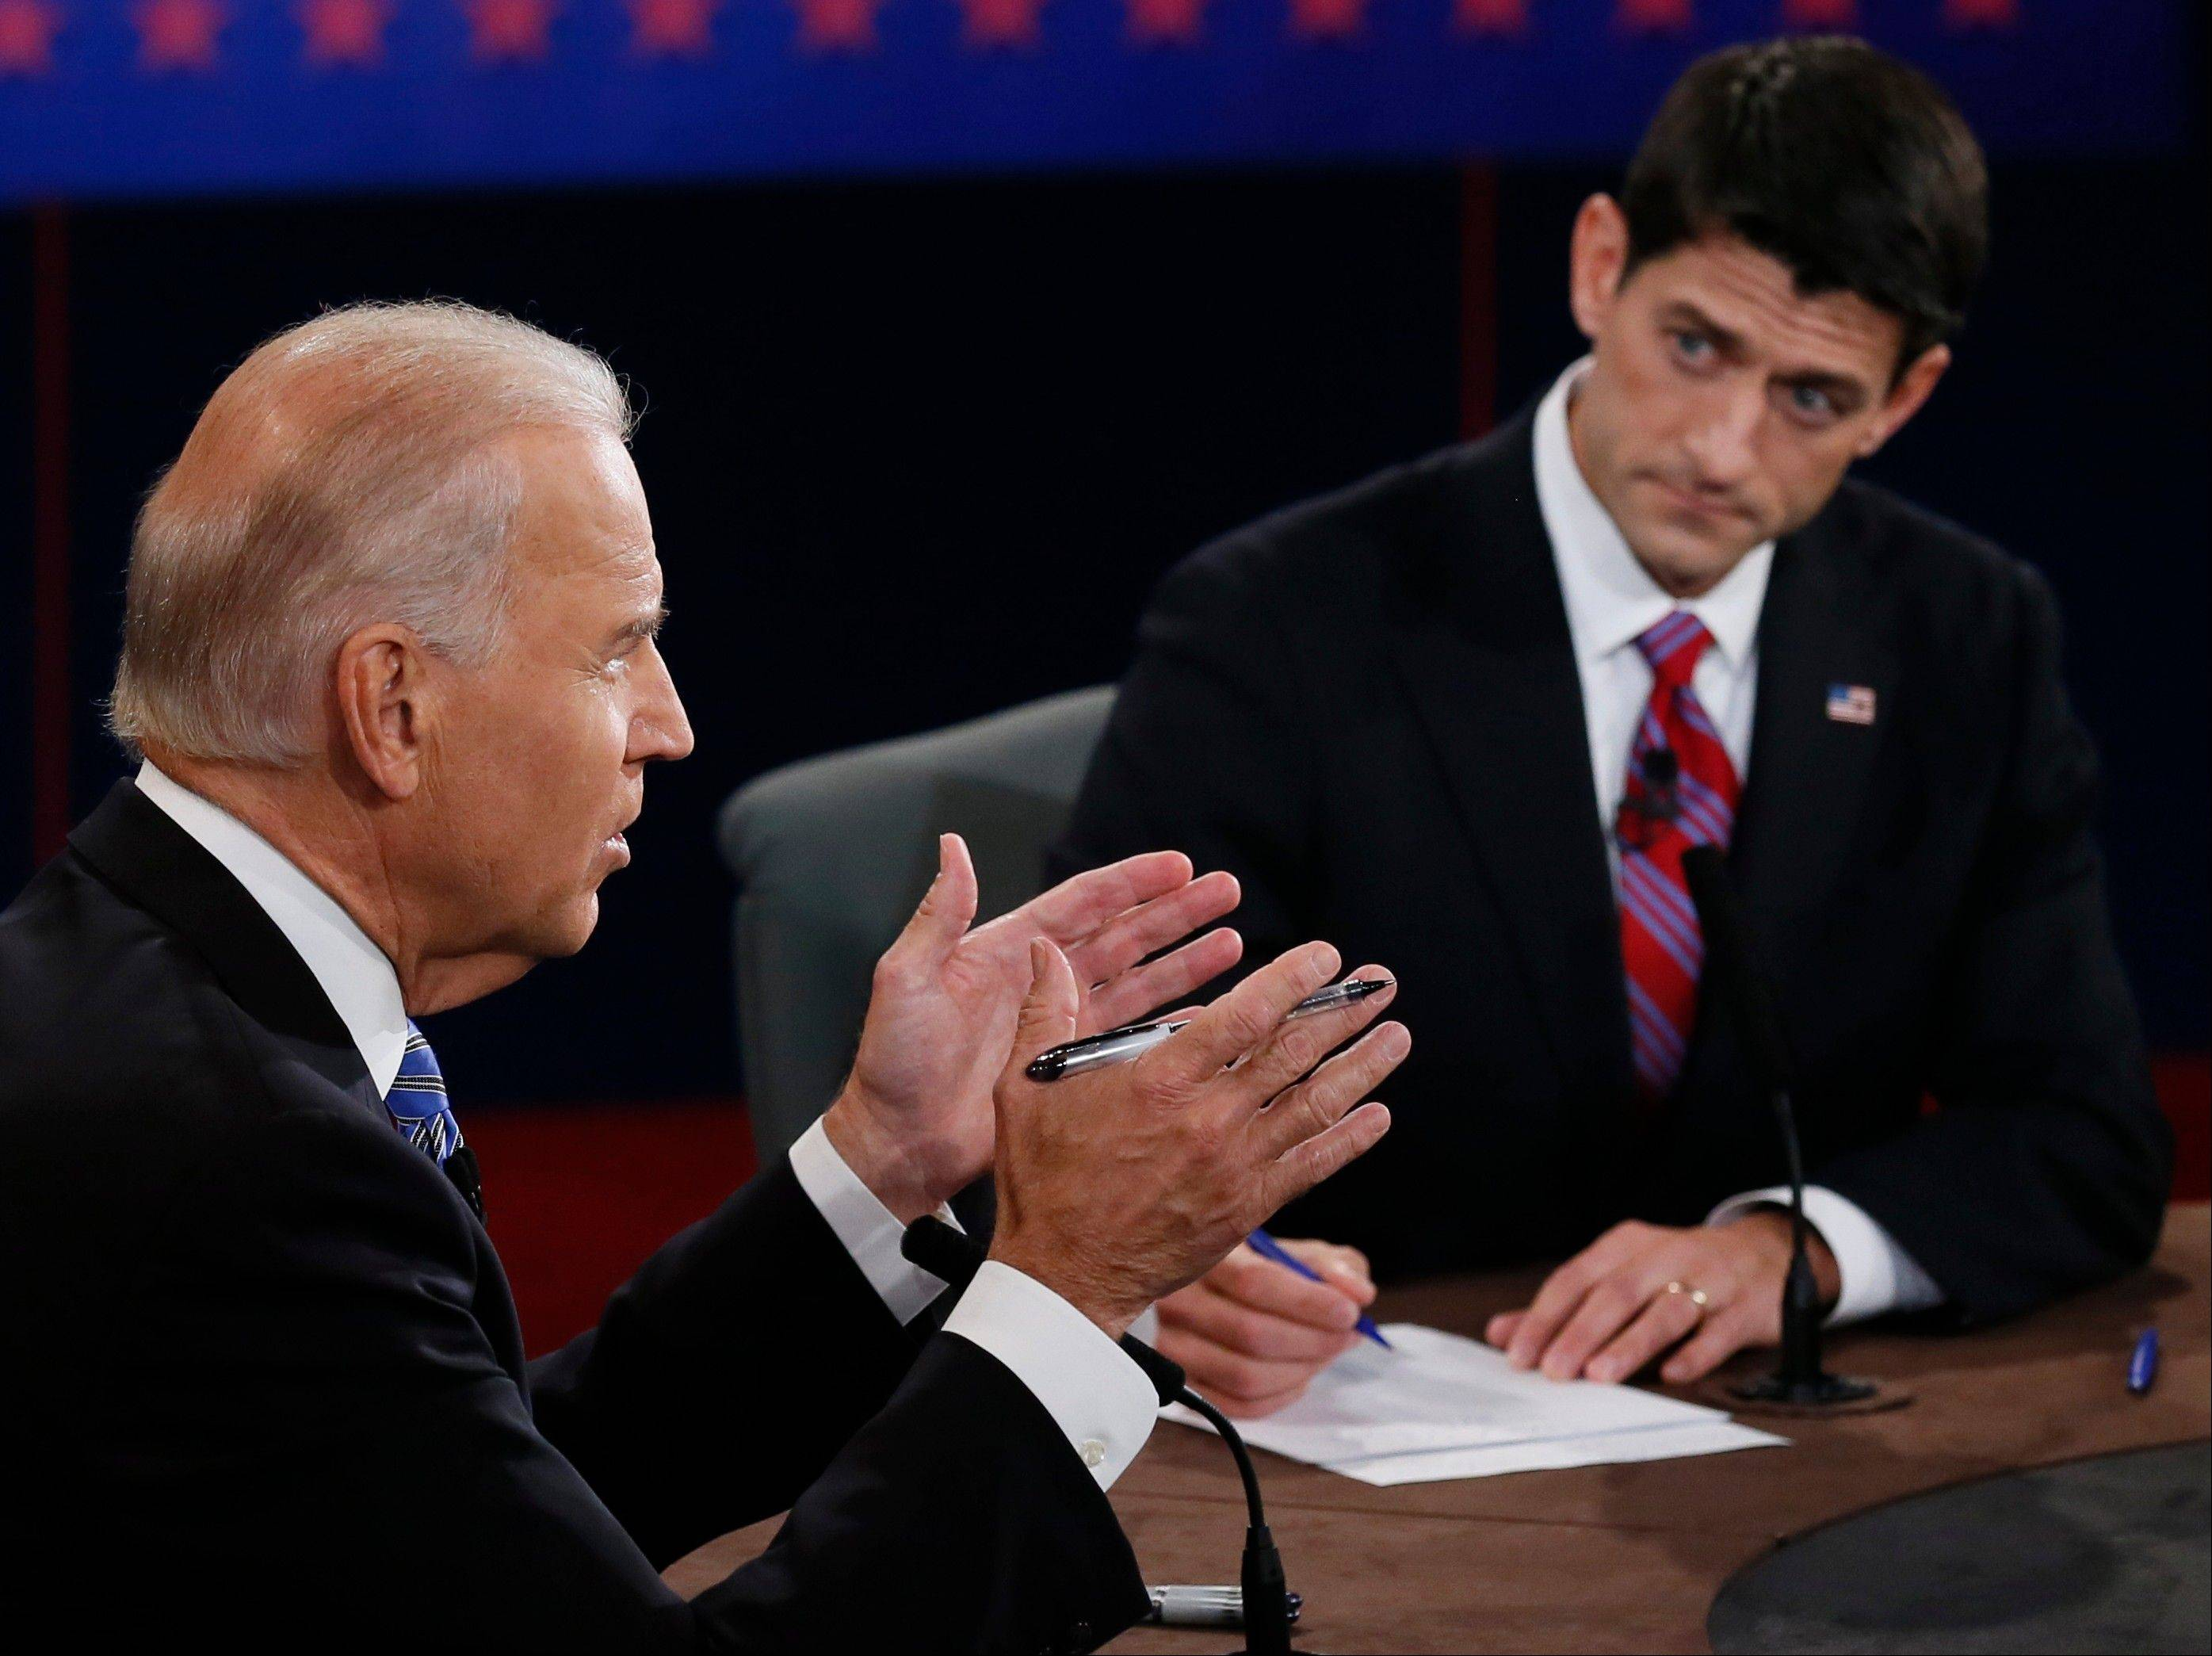 Vice President Joe Biden and Republican vice presidential nominee Rep. Paul Ryan of Wisconsin participate in the vice presidential debate at Centre College on Thursday in Danville, Ky.